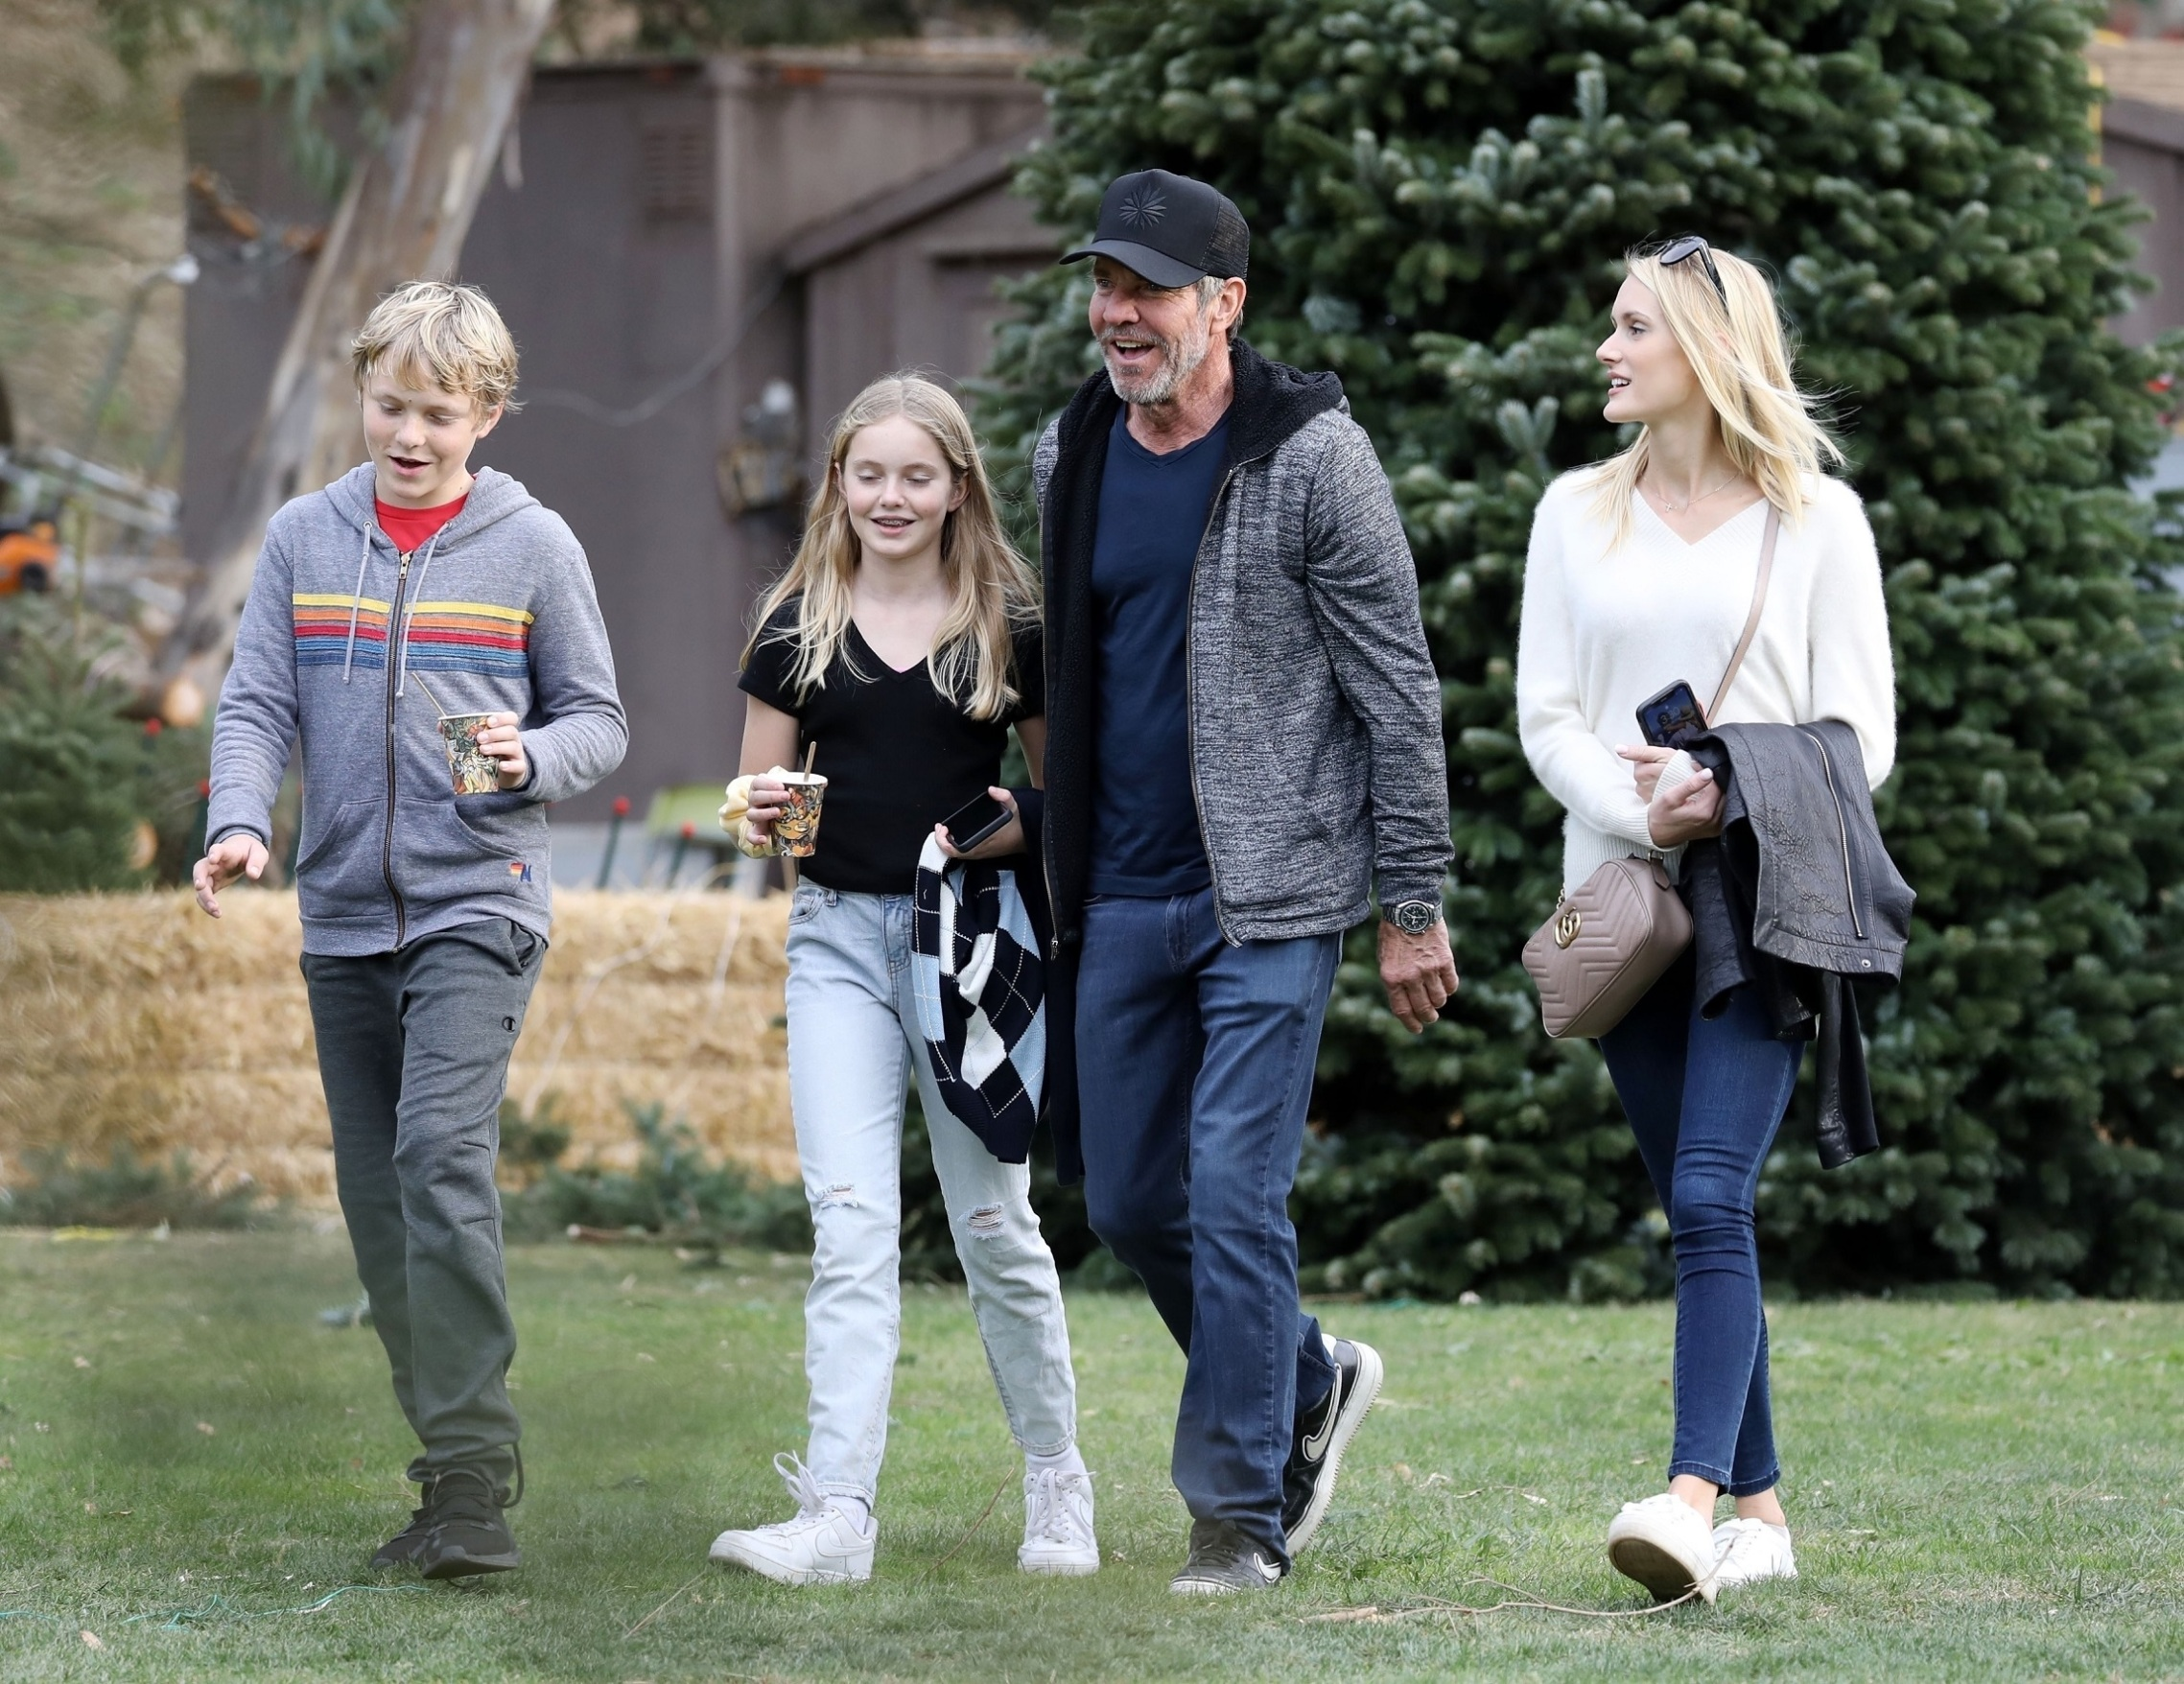 Pacific Palisades, CA  - *EXCLUSIVE*  - Dennis Quaid and his fiancée Laura Savoie go Christmas tree shopping with his two kids, Zoe and Thomas. The 'Midway' actor got into the holiday spirit, smiling and sticking his head into a snowman cutout for a photo op with his kids.  BACKGRID USA 1 DECEMBER 2019,Image: 485868582, License: Rights-managed, Restrictions: , Model Release: no, Credit line: Clint Brewer / BACKGRID / Backgrid USA / Profimedia